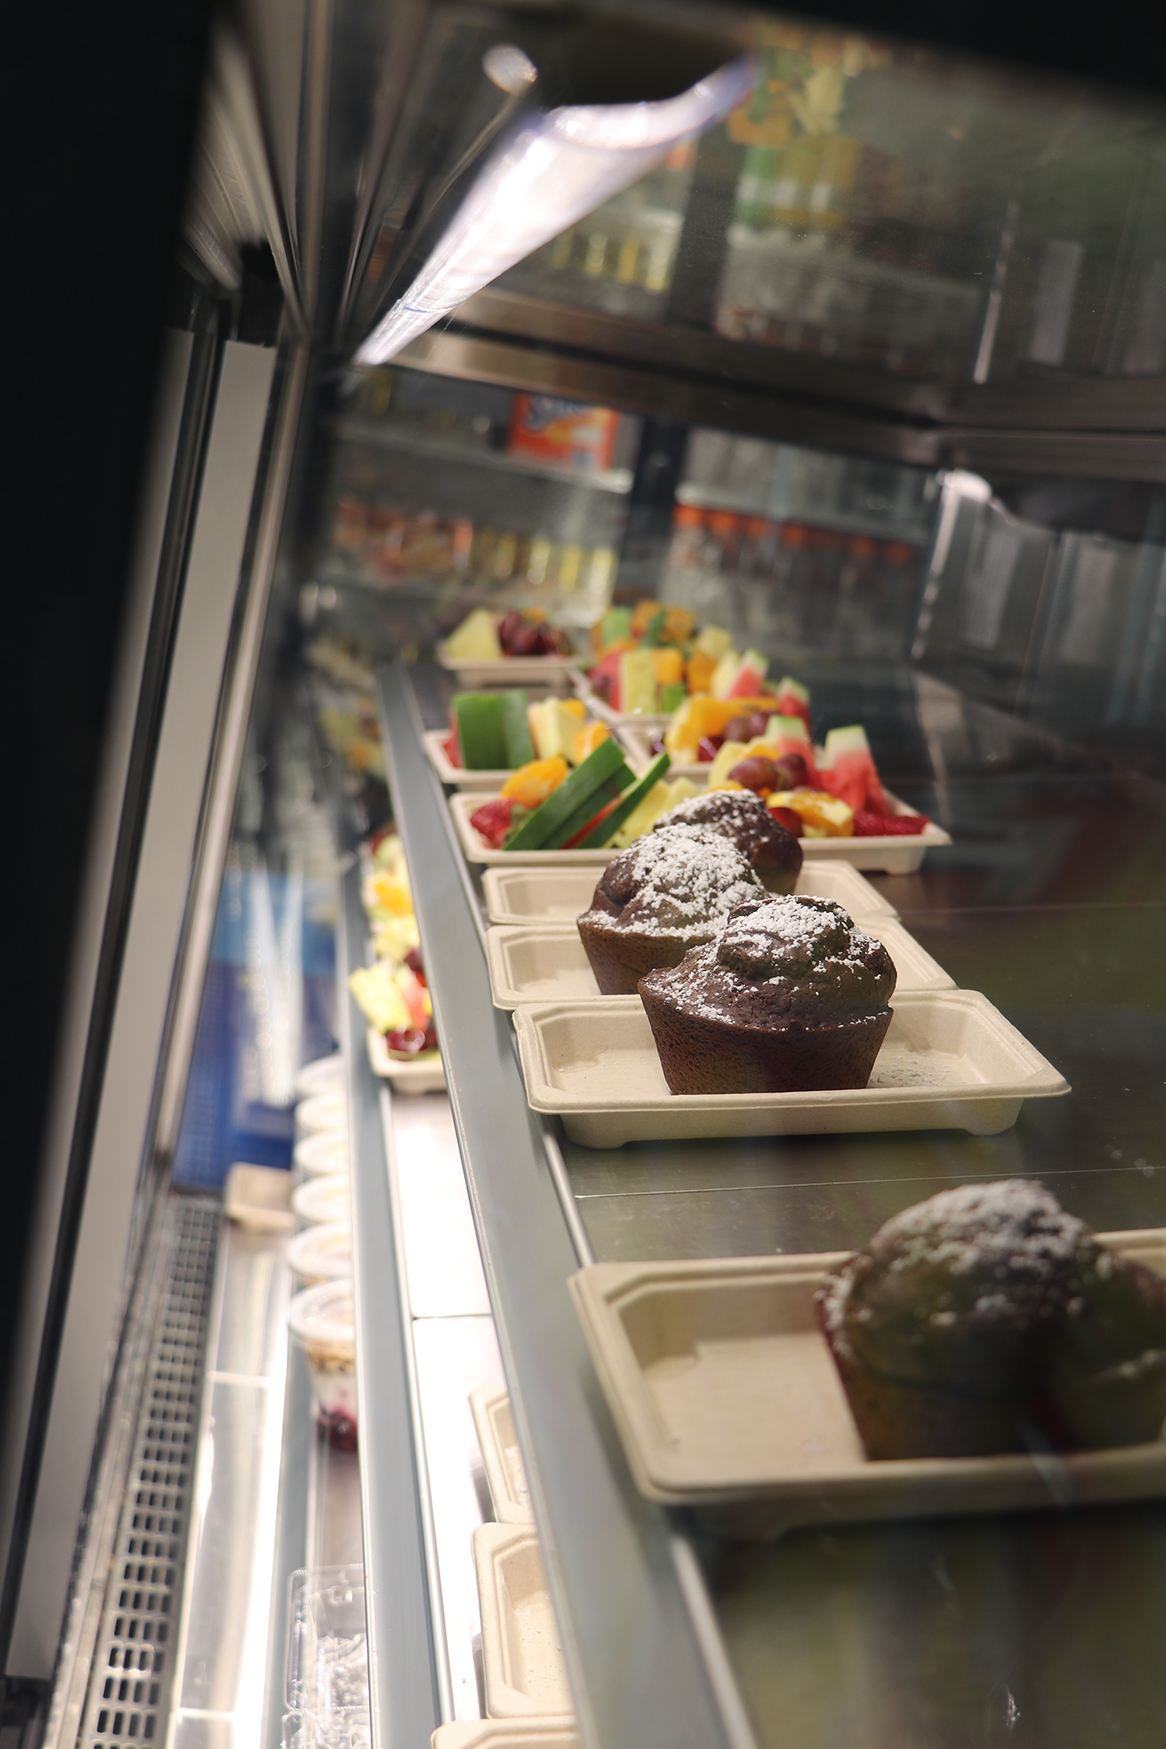 The display fridge in the canteen, with fruit and chocolate muffins